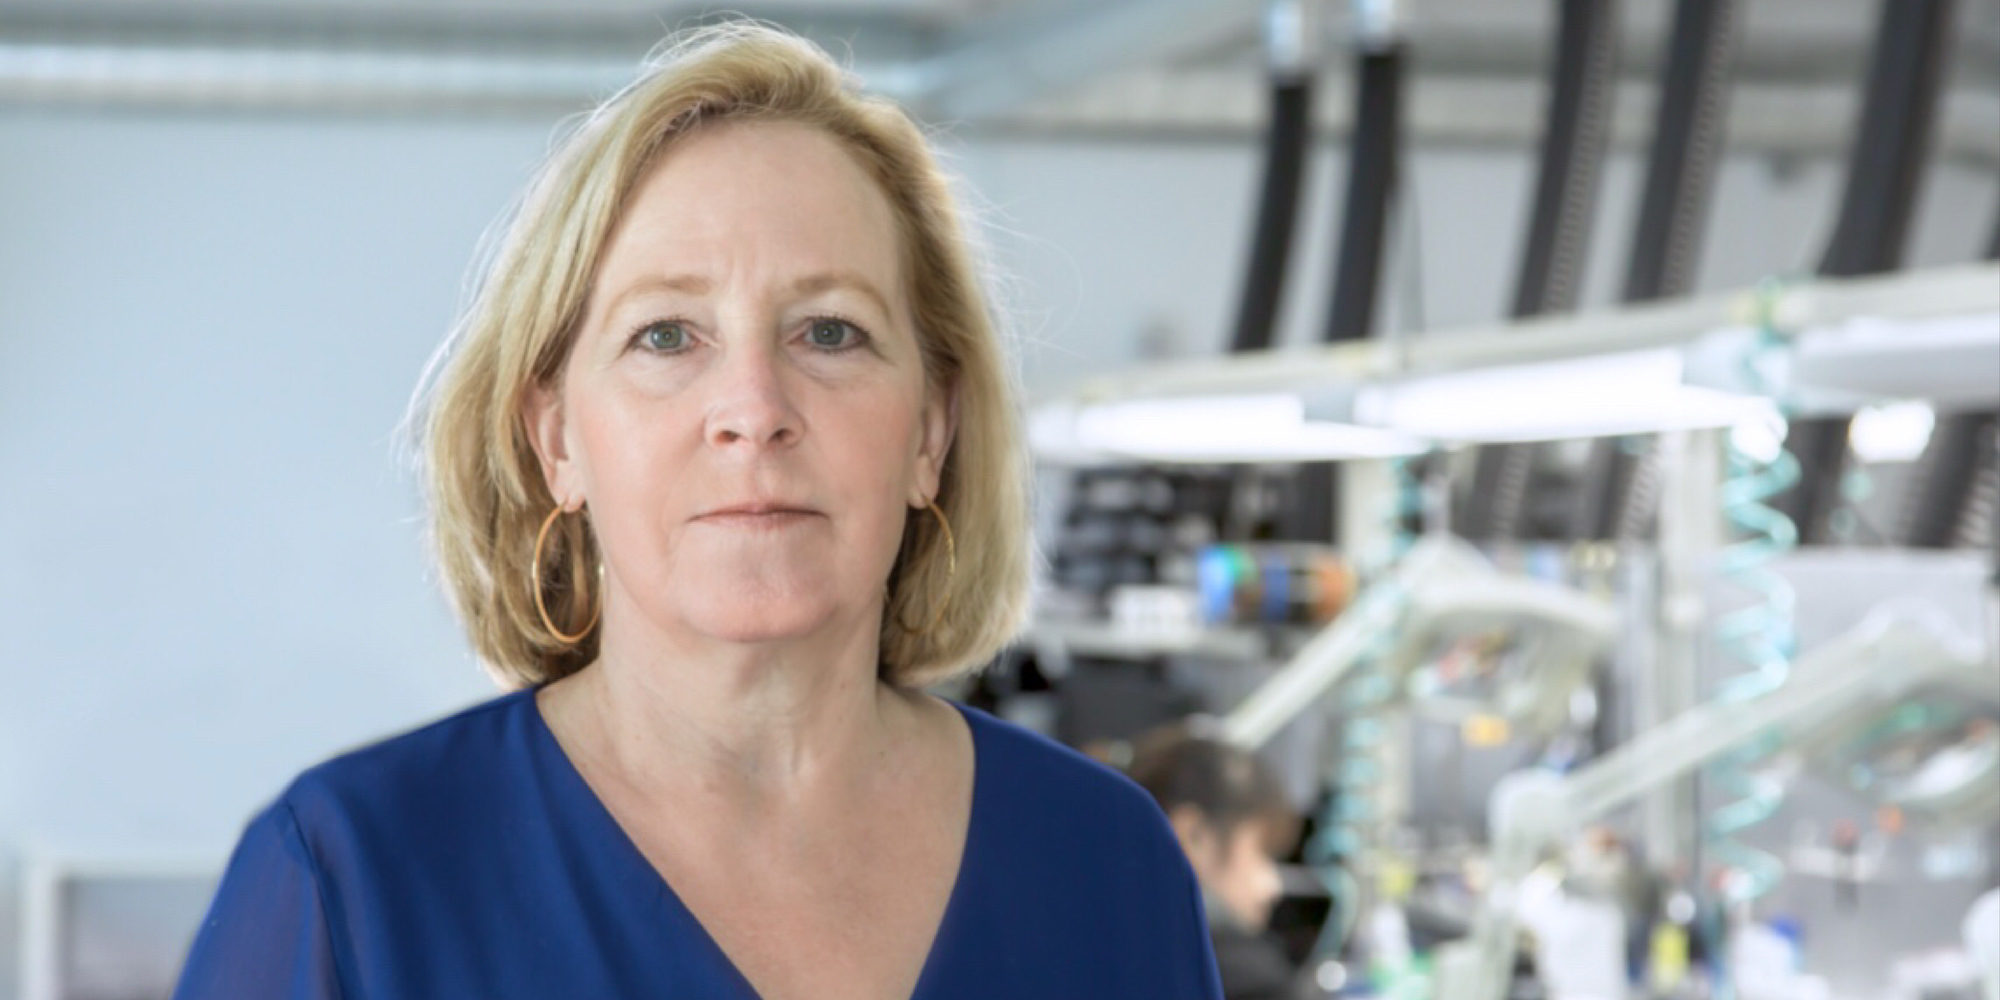 BE Meyers & Co Appoints Laser Manufacturing Expert Sue McGinley As Chief Operating Officer